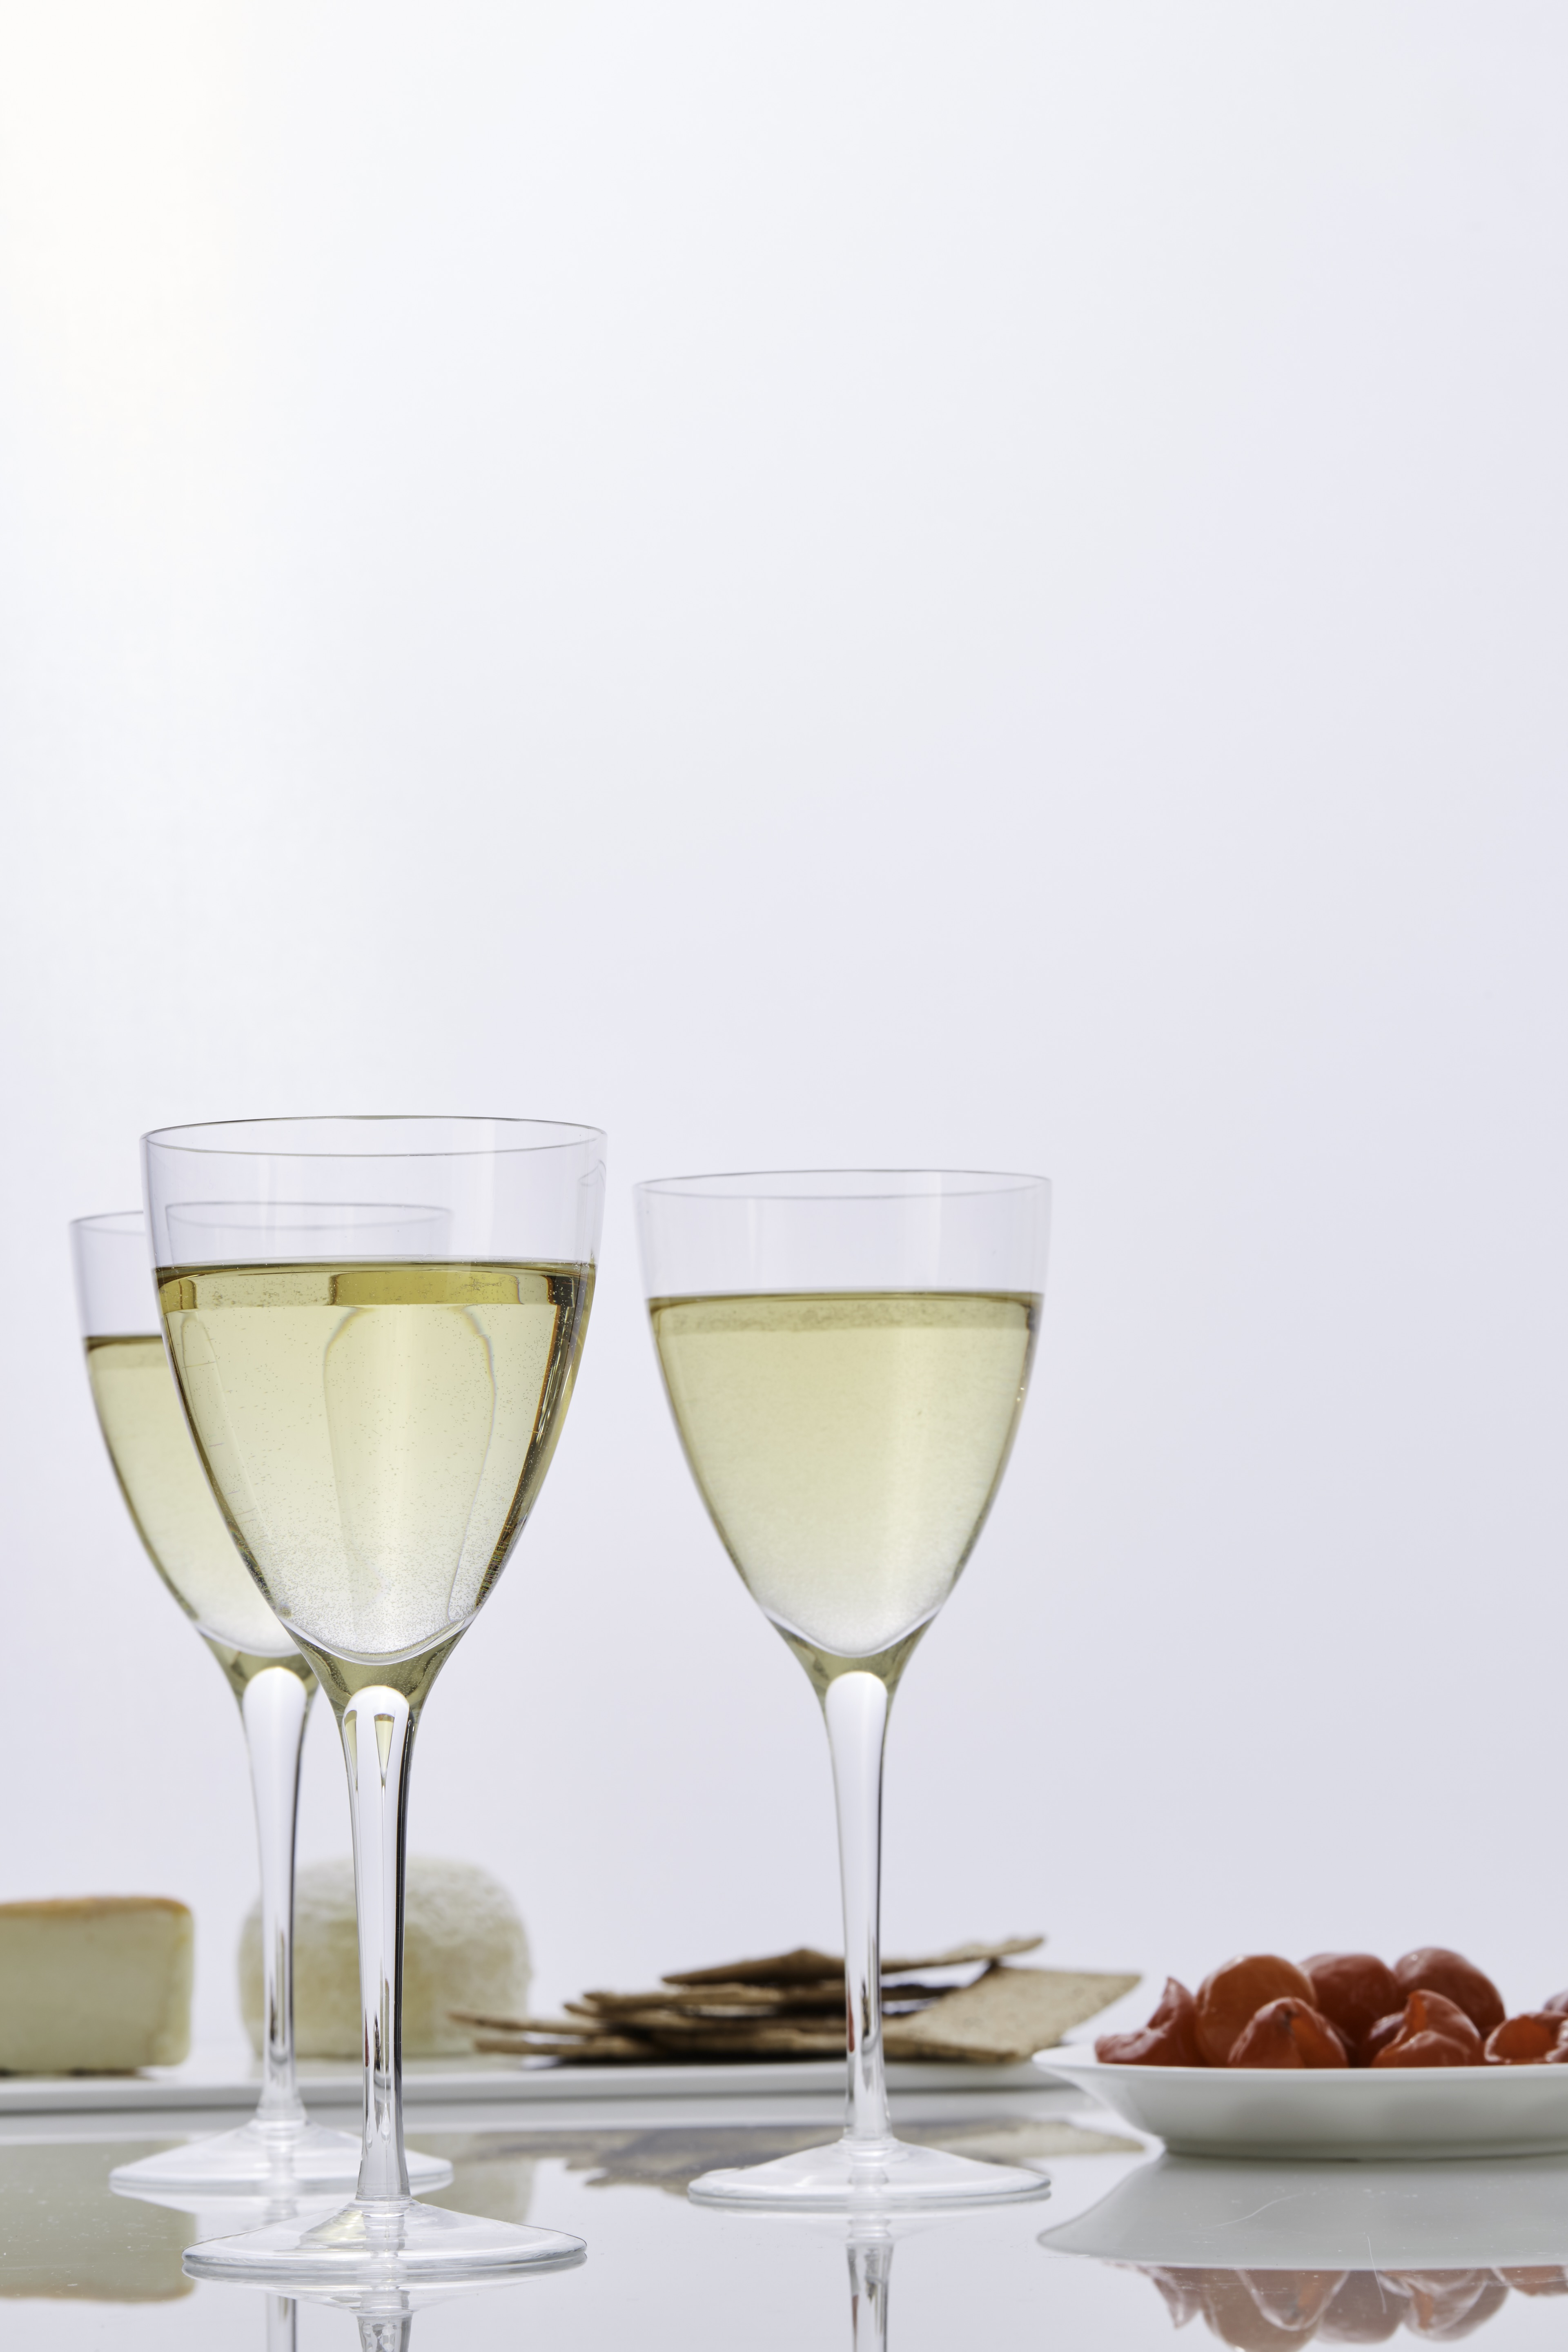 party-table-white-wine-glasses-0617-6378406